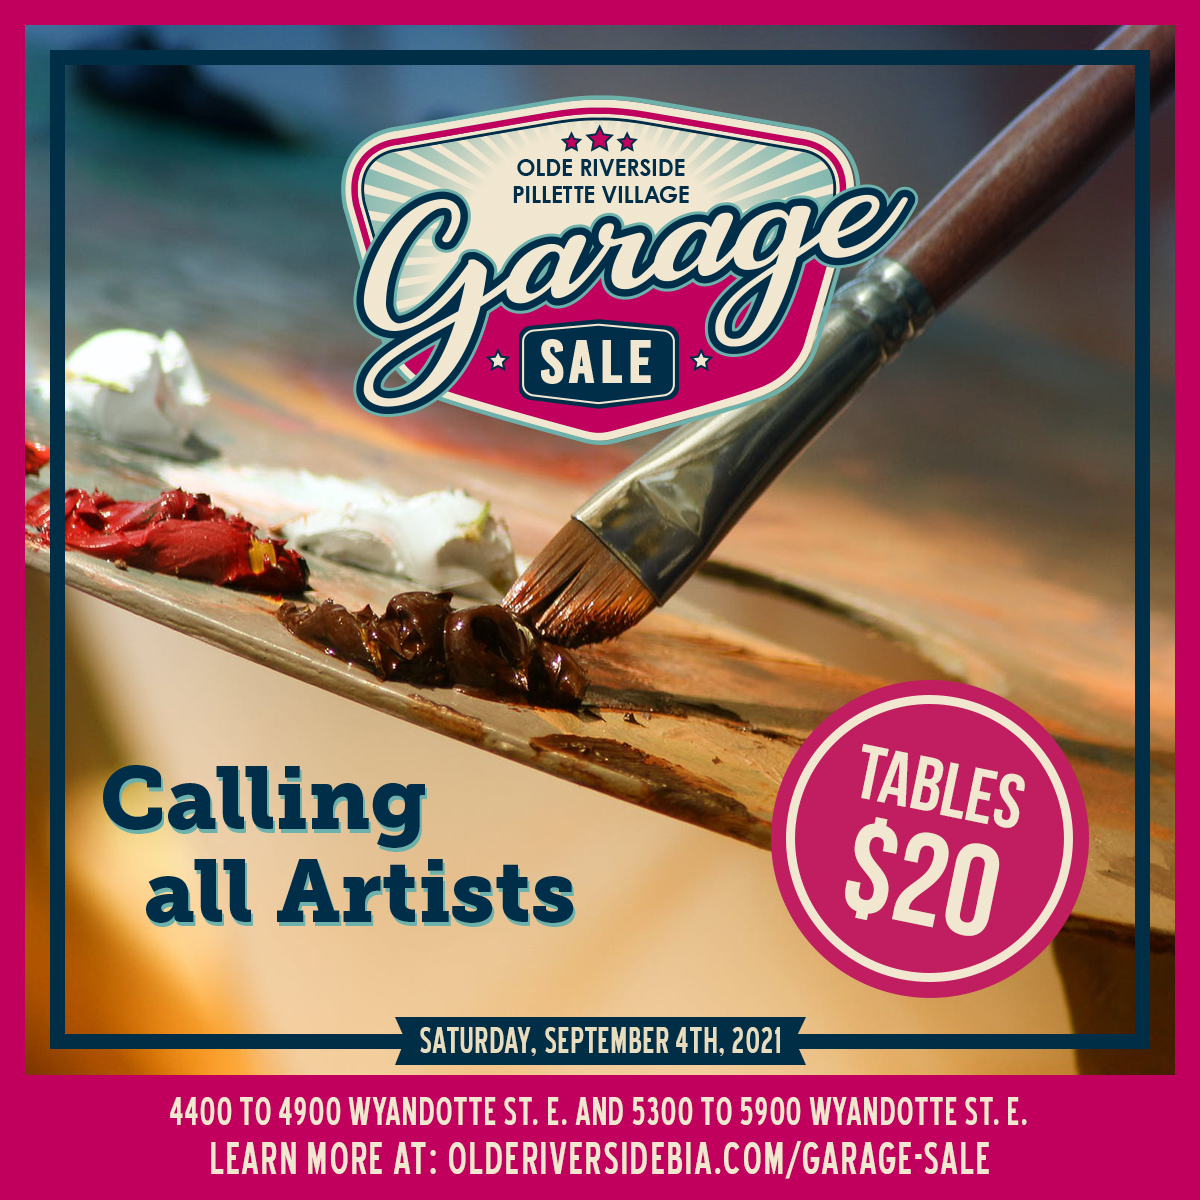 Calling all Artists and Crafters!